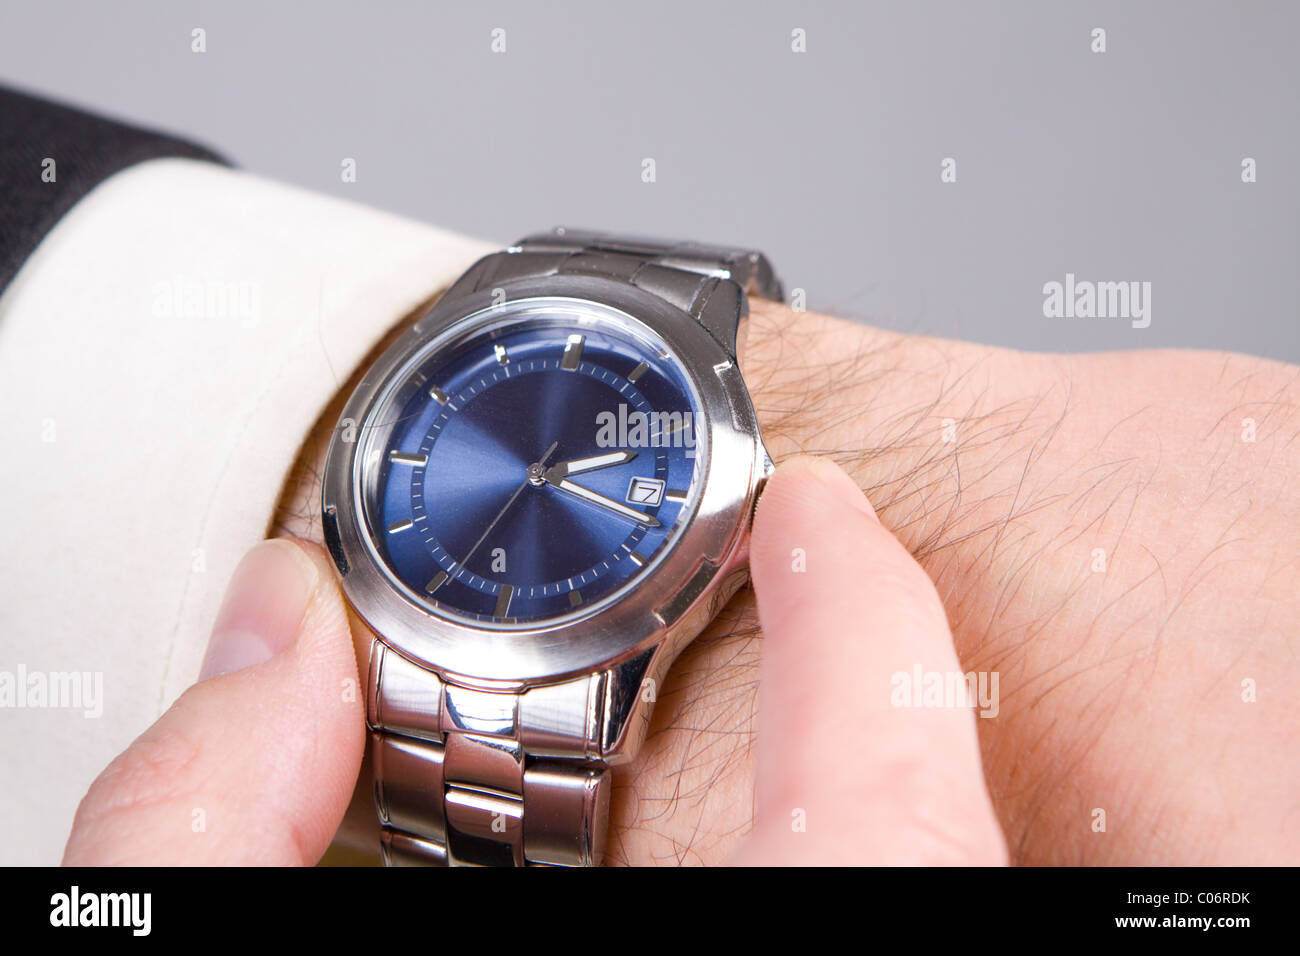 Hand ready to stop chronograph in a modern watch. Stock Photo